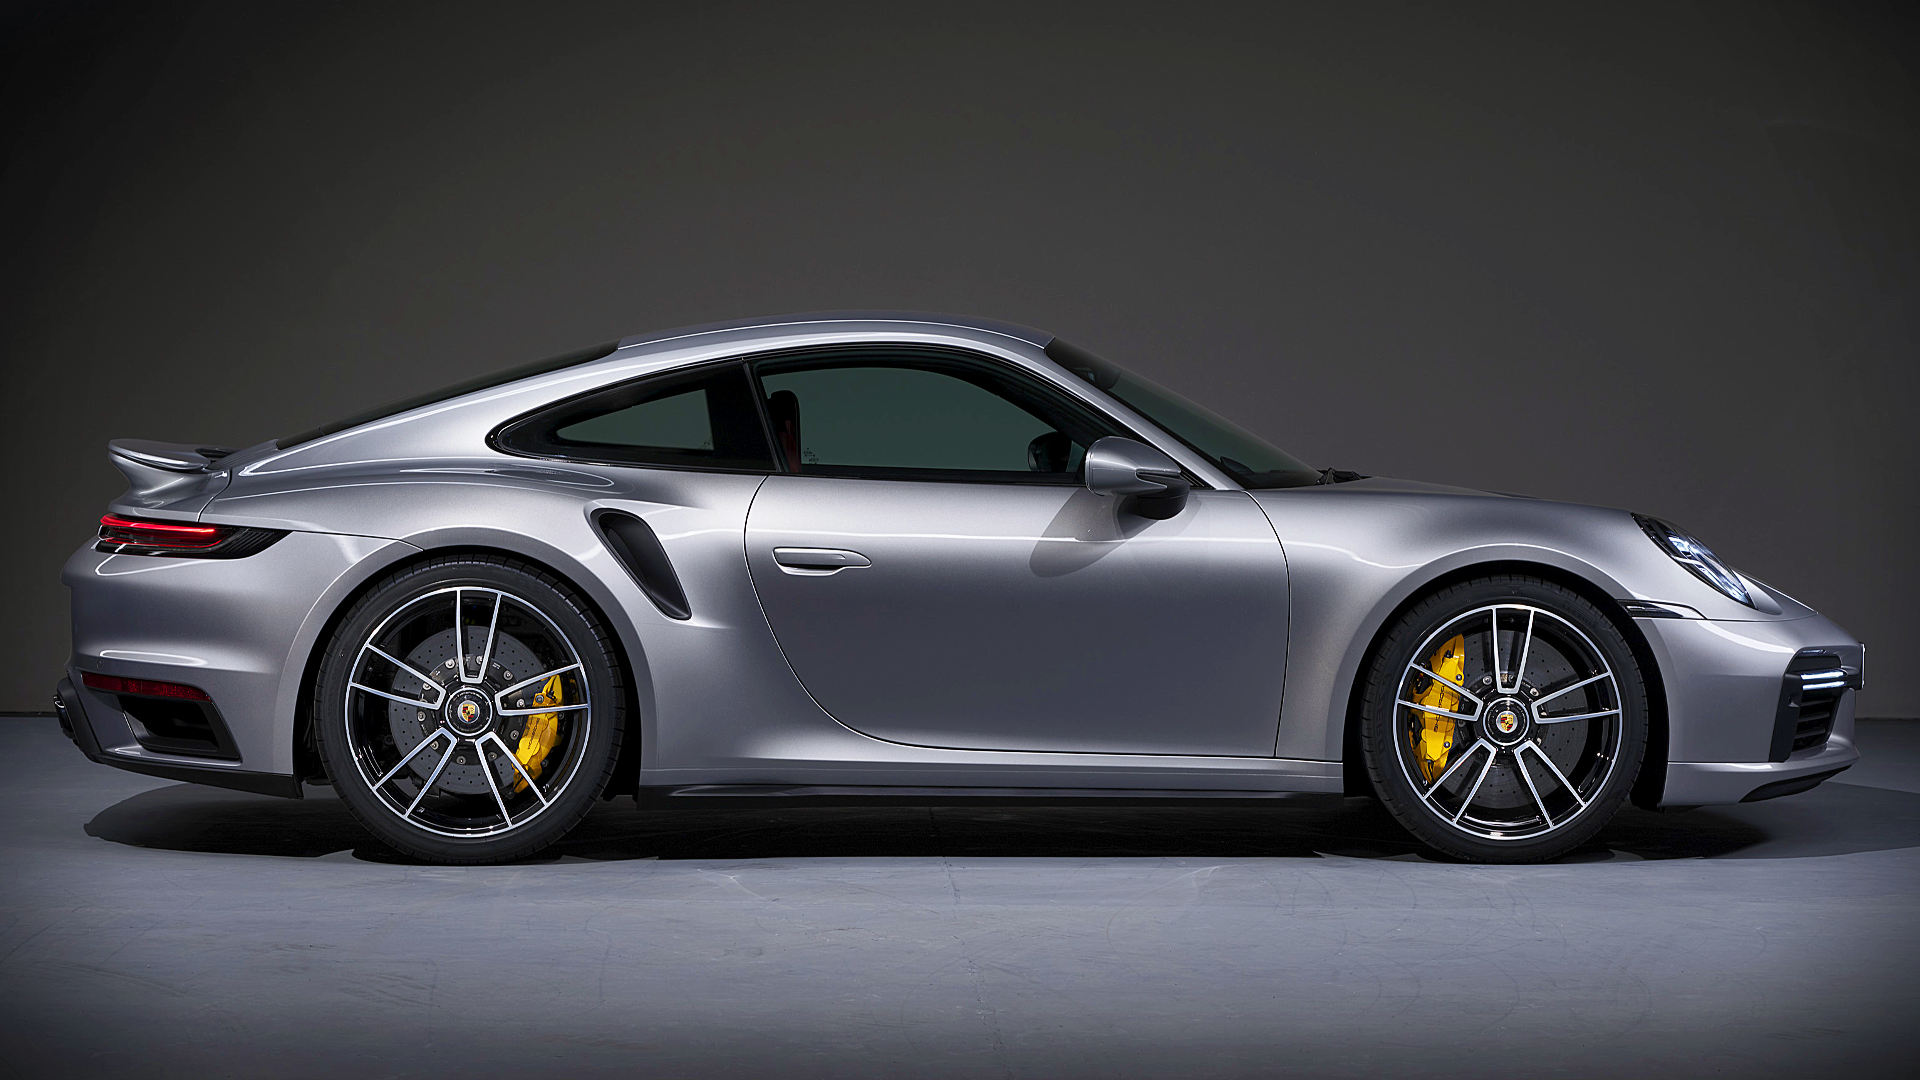 Porsche 911 Turbo S Coupe 2021 Wallpaper